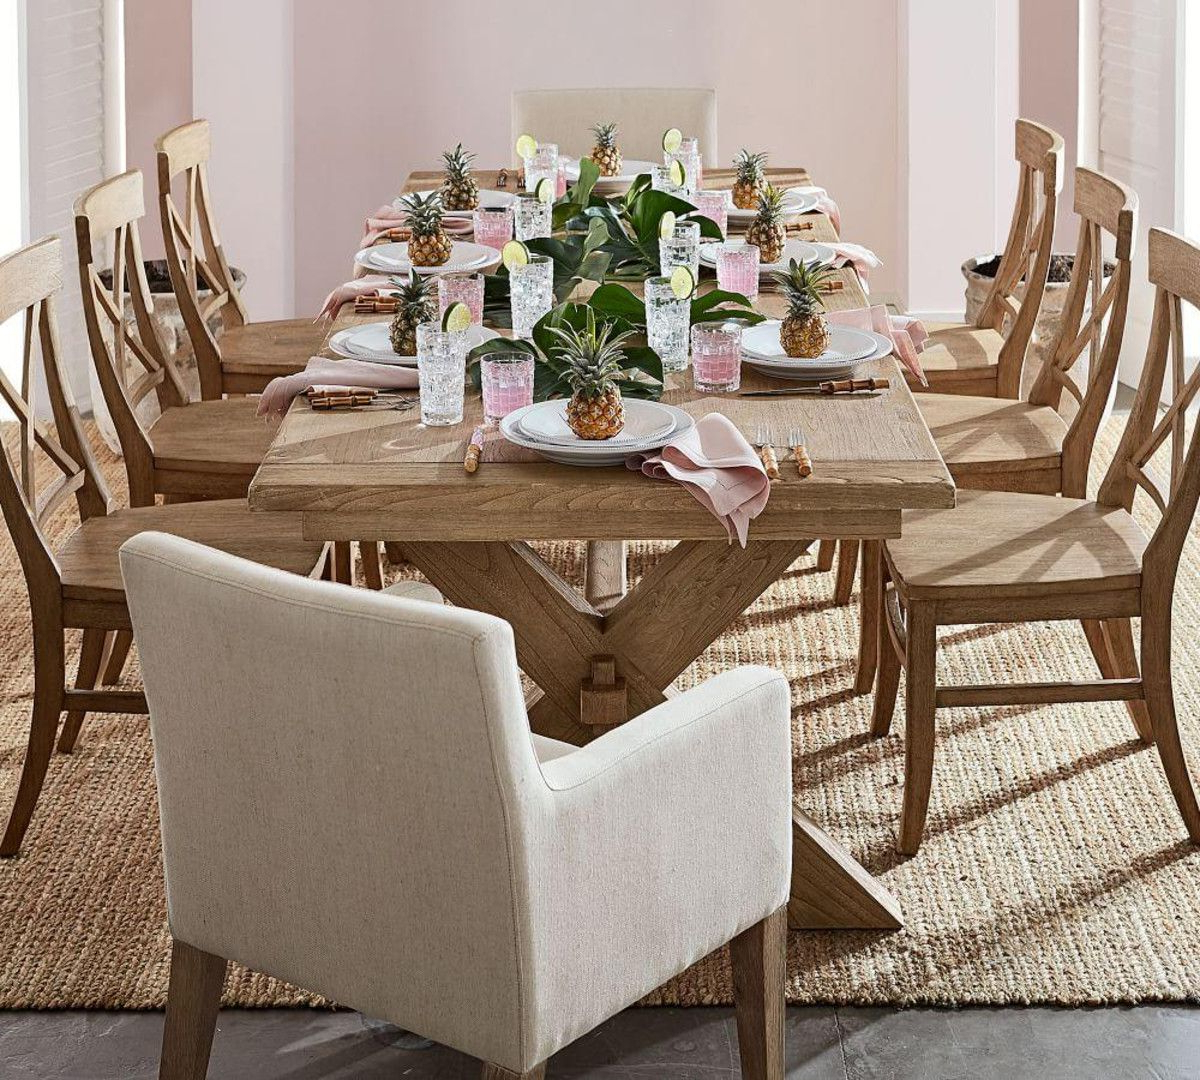 Belgian Gray Linden Extending Dining Tables inside Most Recently Released Toscana Extending Dining Table - Seadrift In 2019